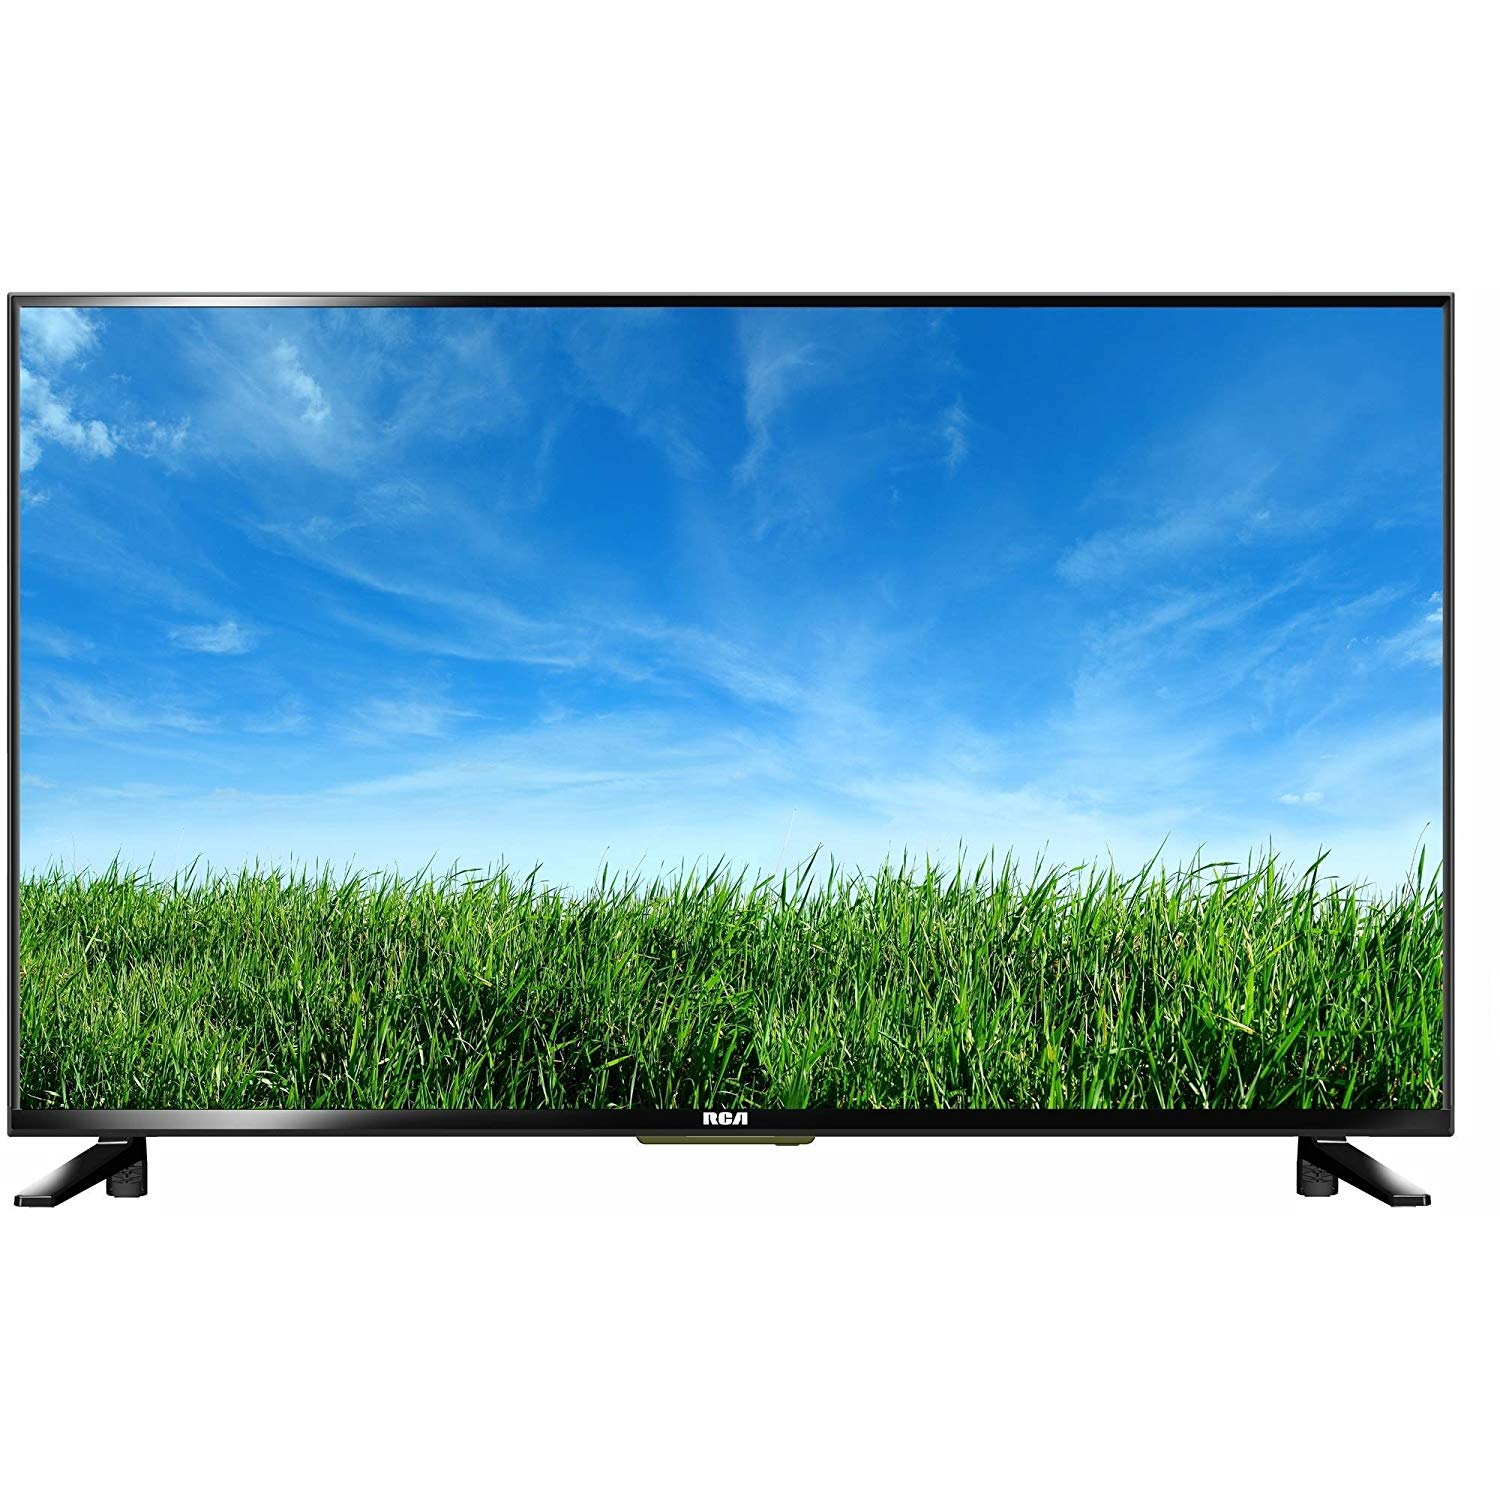 An image of RCA RLED3221 32-Inch FHD LED TV